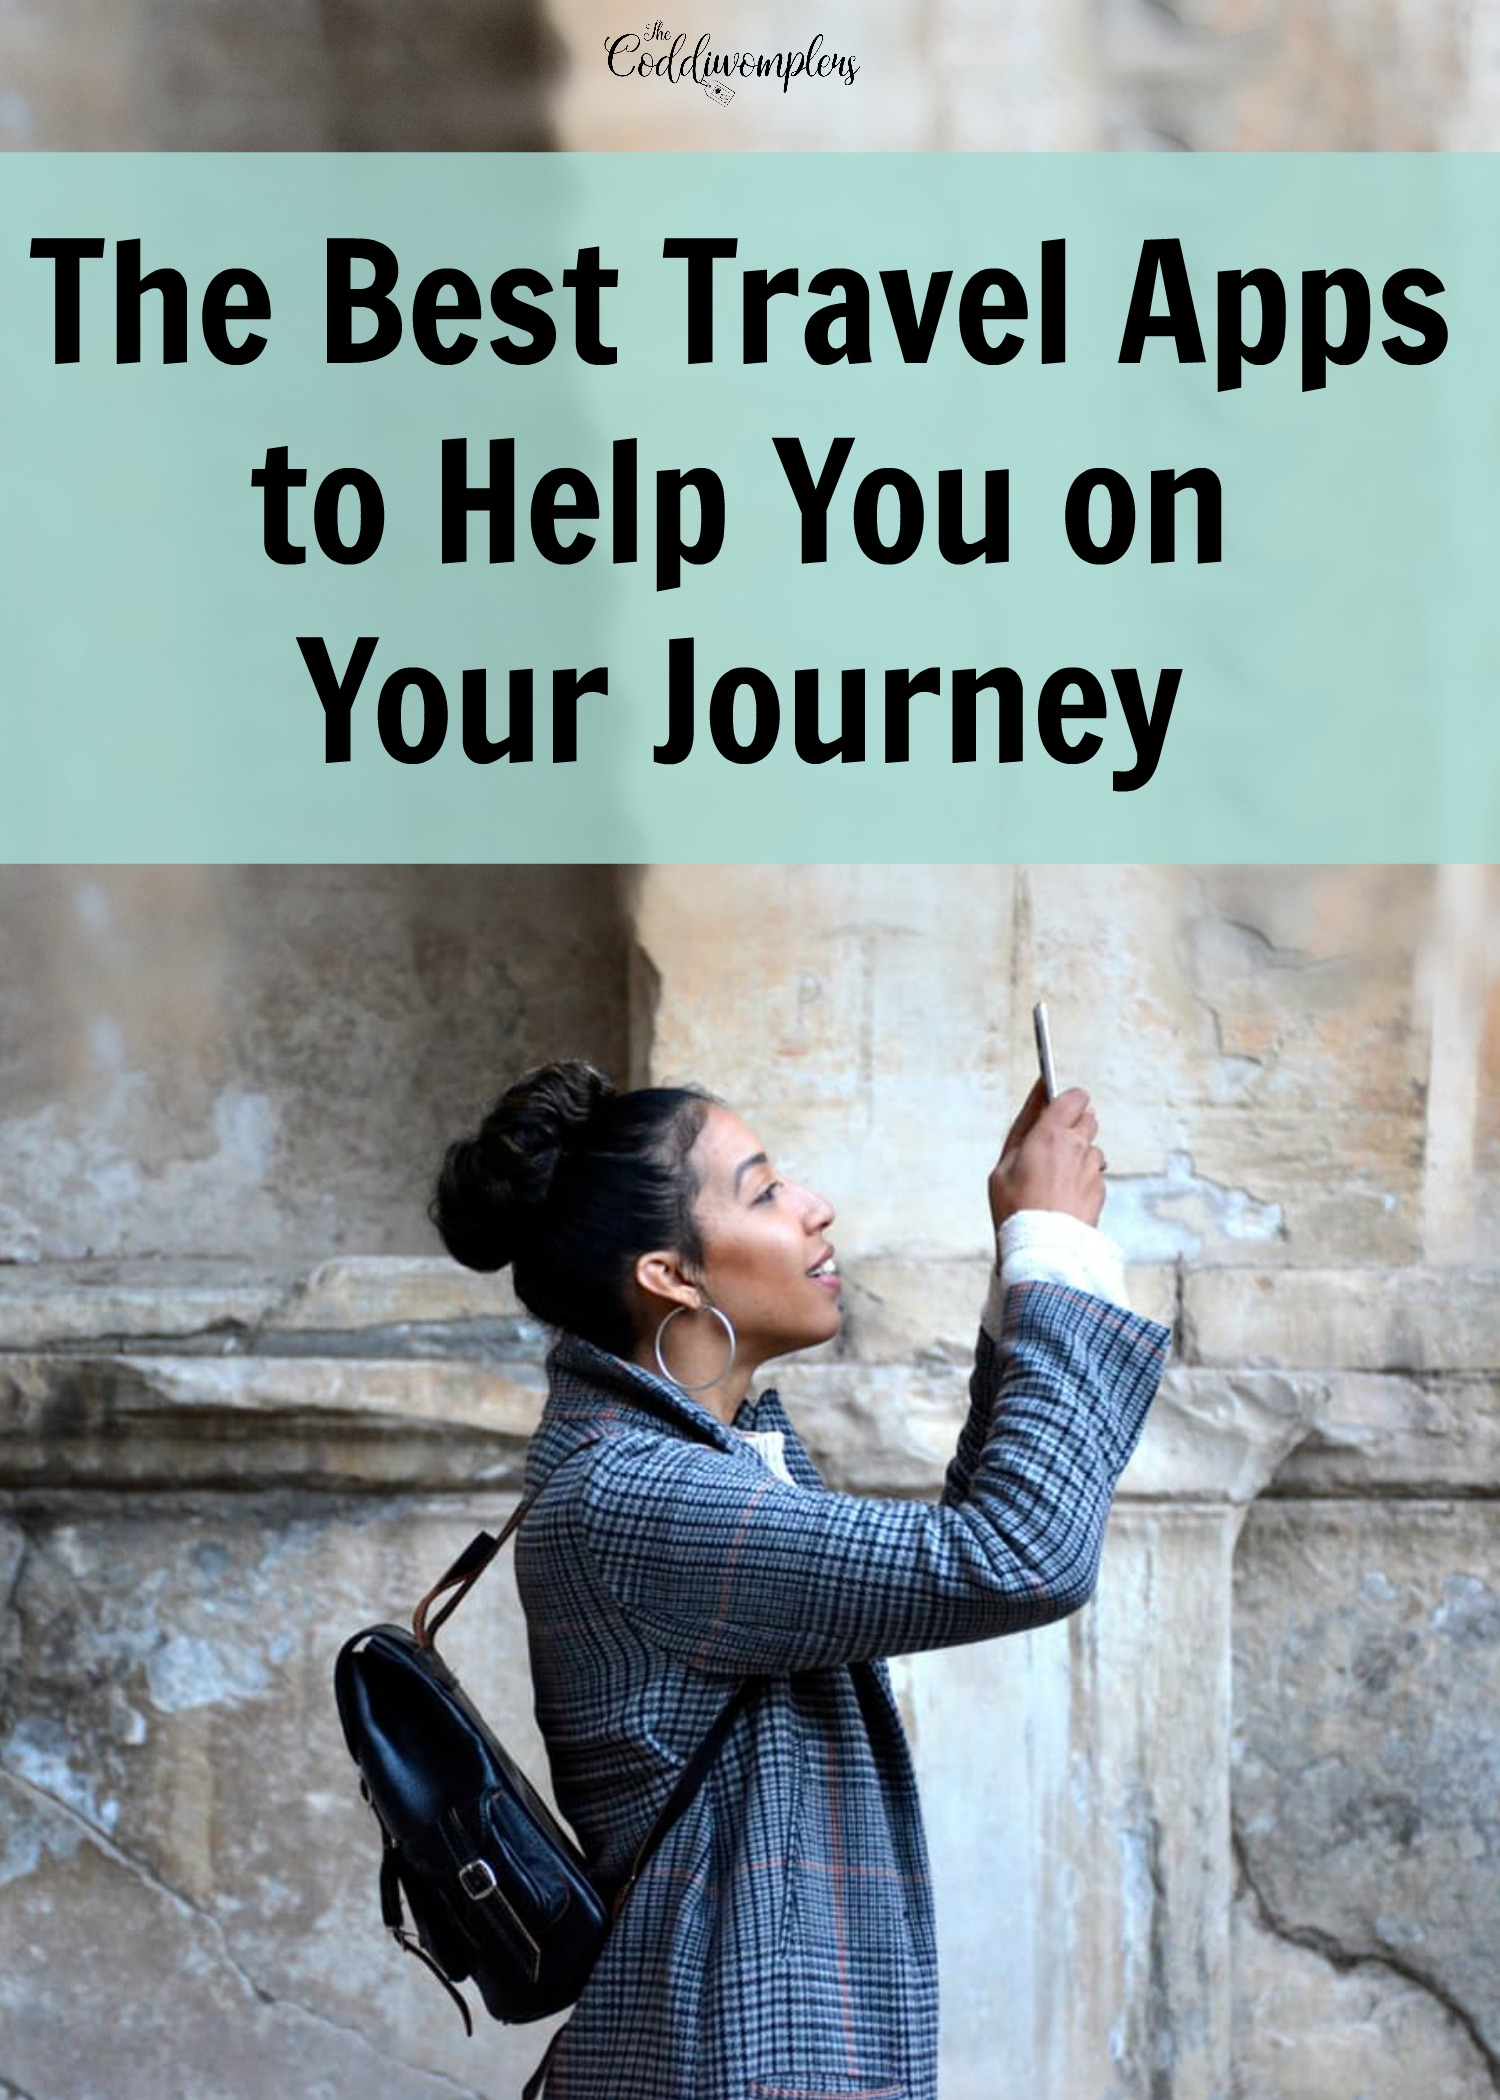 The Best Travel Apps to Help You on Your Journey